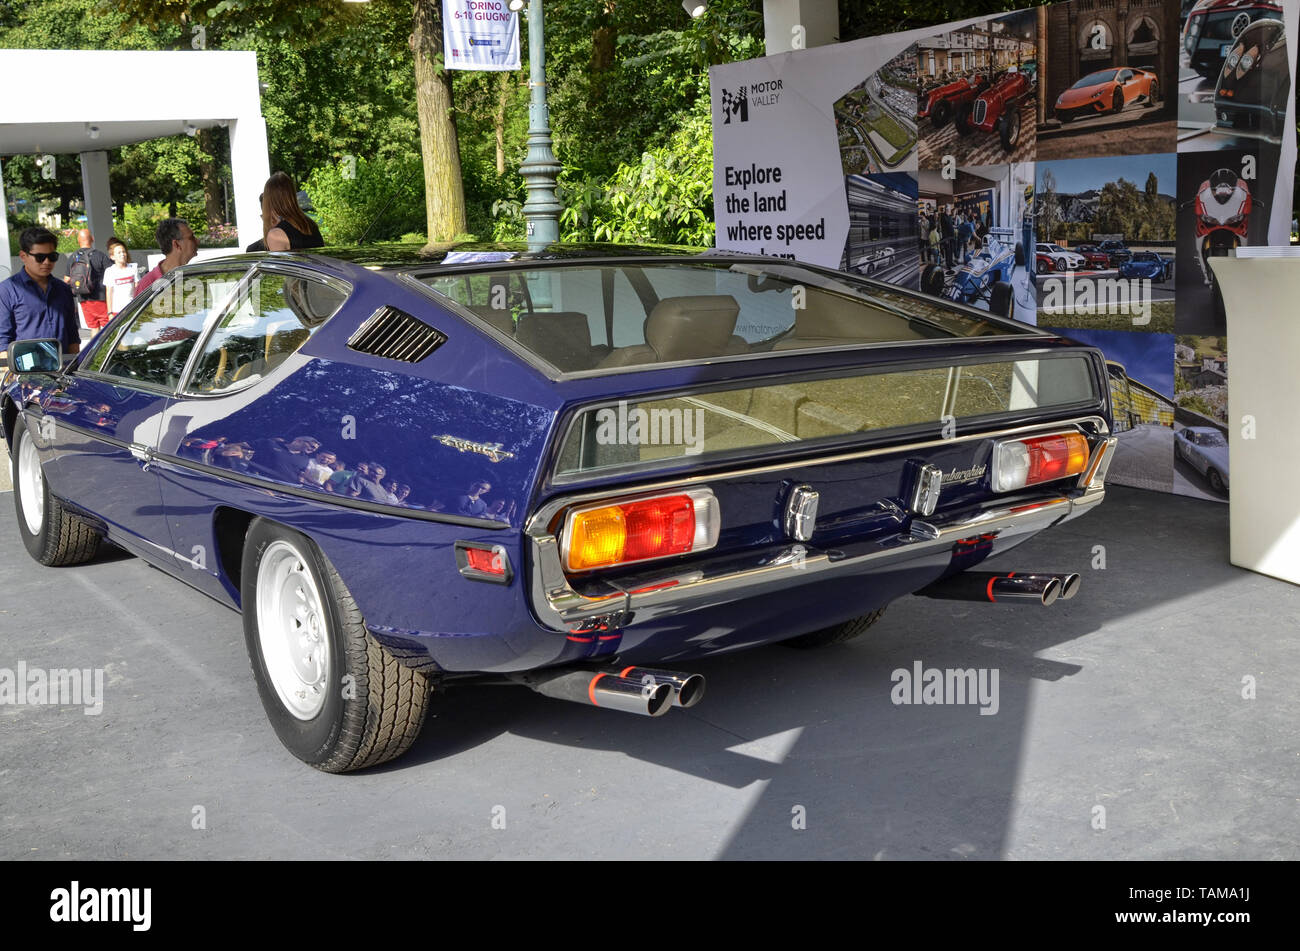 Turin, Piedmont, Italy. June 2018. At the Valentino park, the motor show. At the Lamborghini stand there are both modern and vintage models Stock Photo